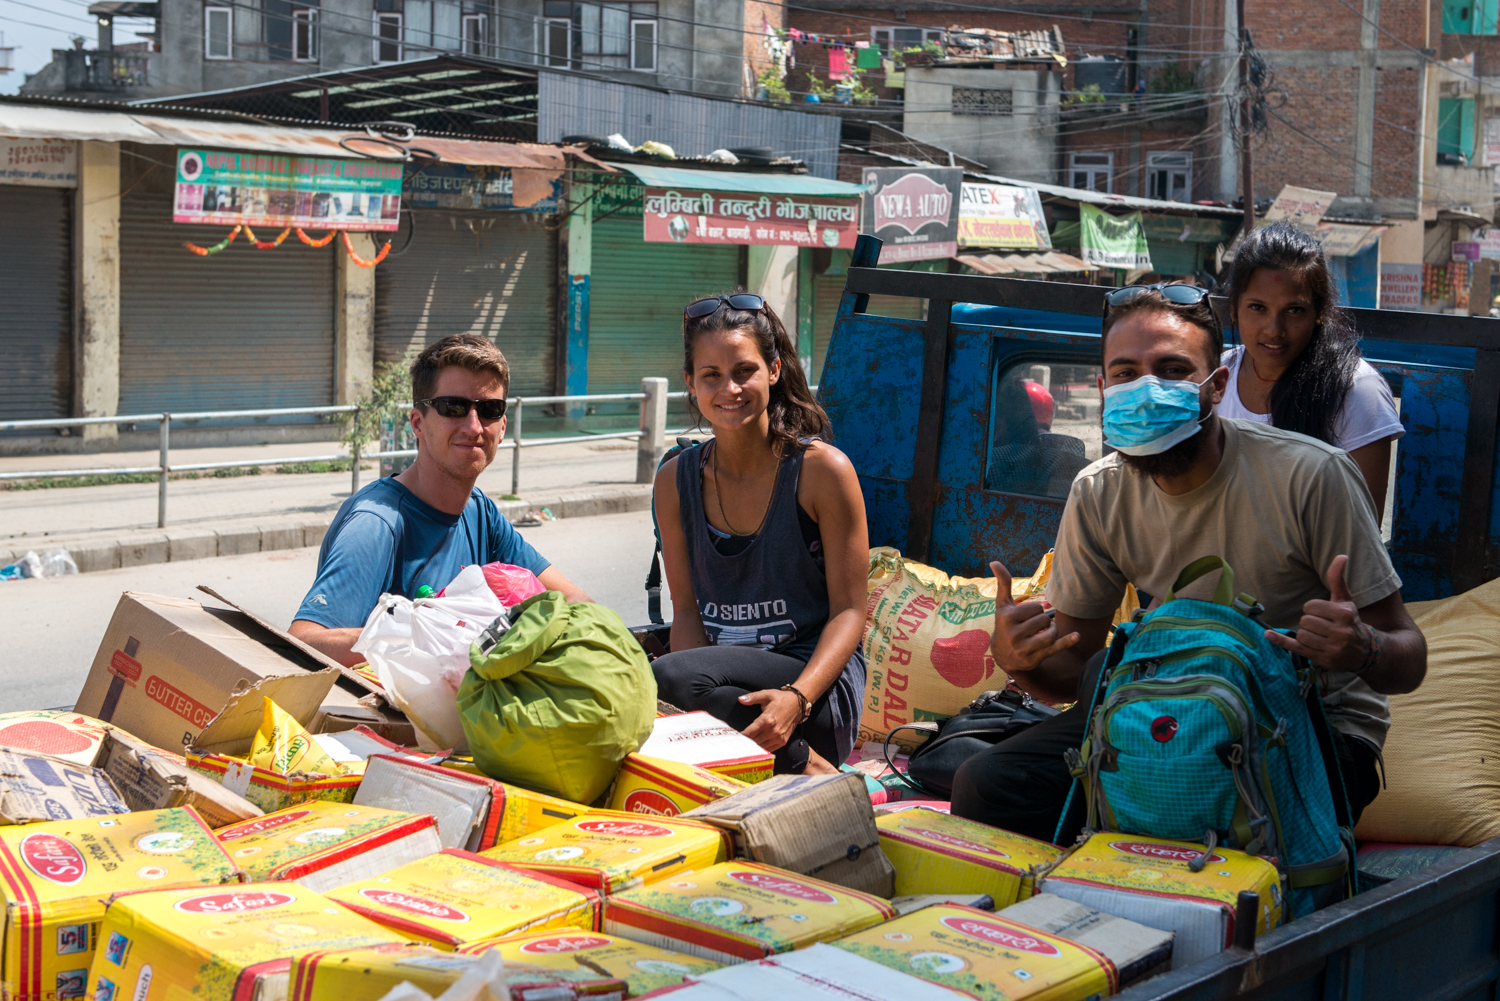 Rich, Laura, James and Kamala head to Khiping (her village) which has roughly over 400 people. With a big truck, we packed 50 bags of rice (2.5 tons), 300kg of lentils and oil (200L), biscuits (200 packets), salt (100 bags), and soap (200 bars).